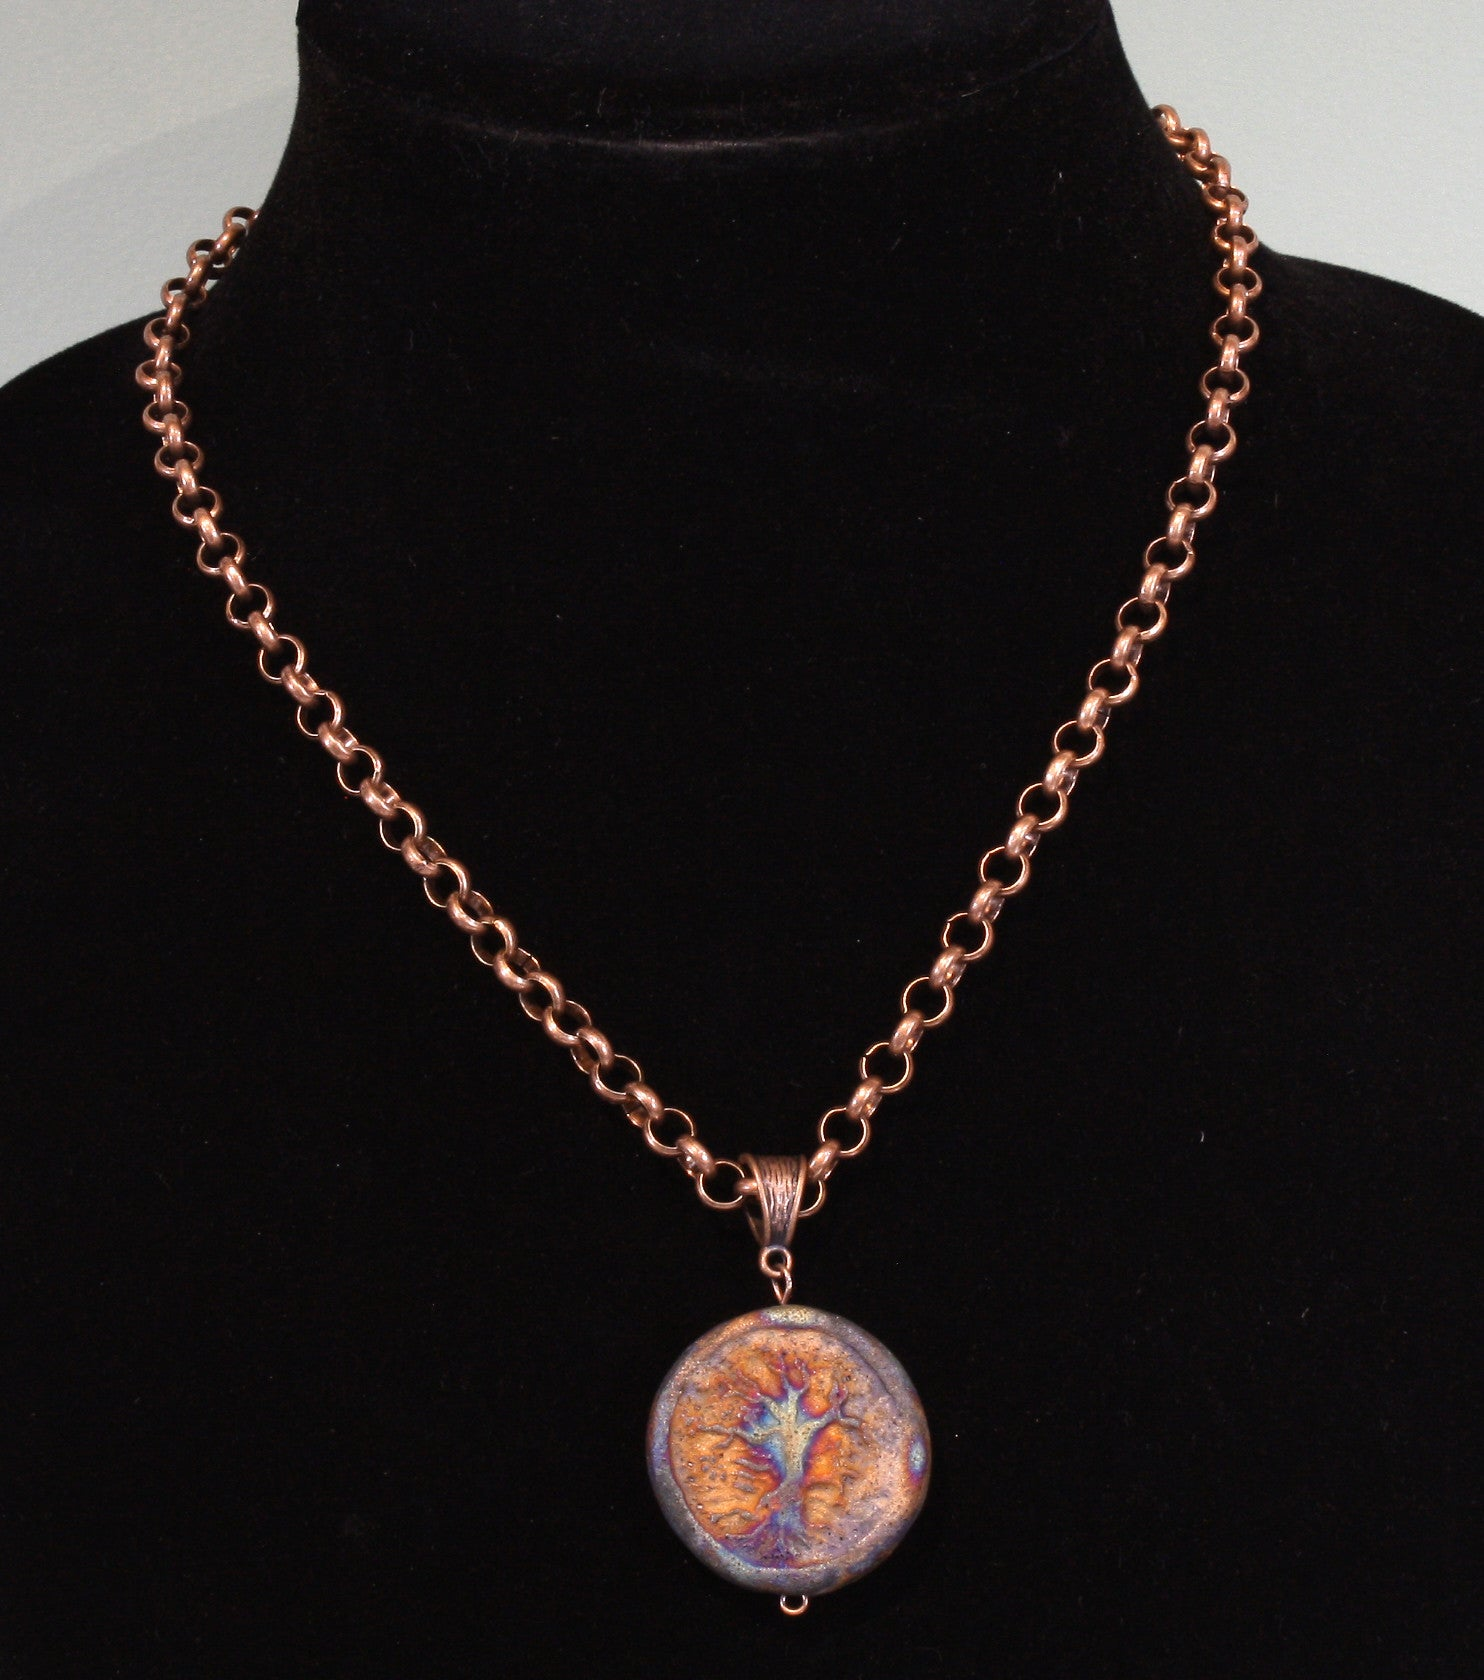 """Raku Tree of Life"" Raku-glazed Ceramic Pendant Necklace on 18 inch copper-tone rolo chain"